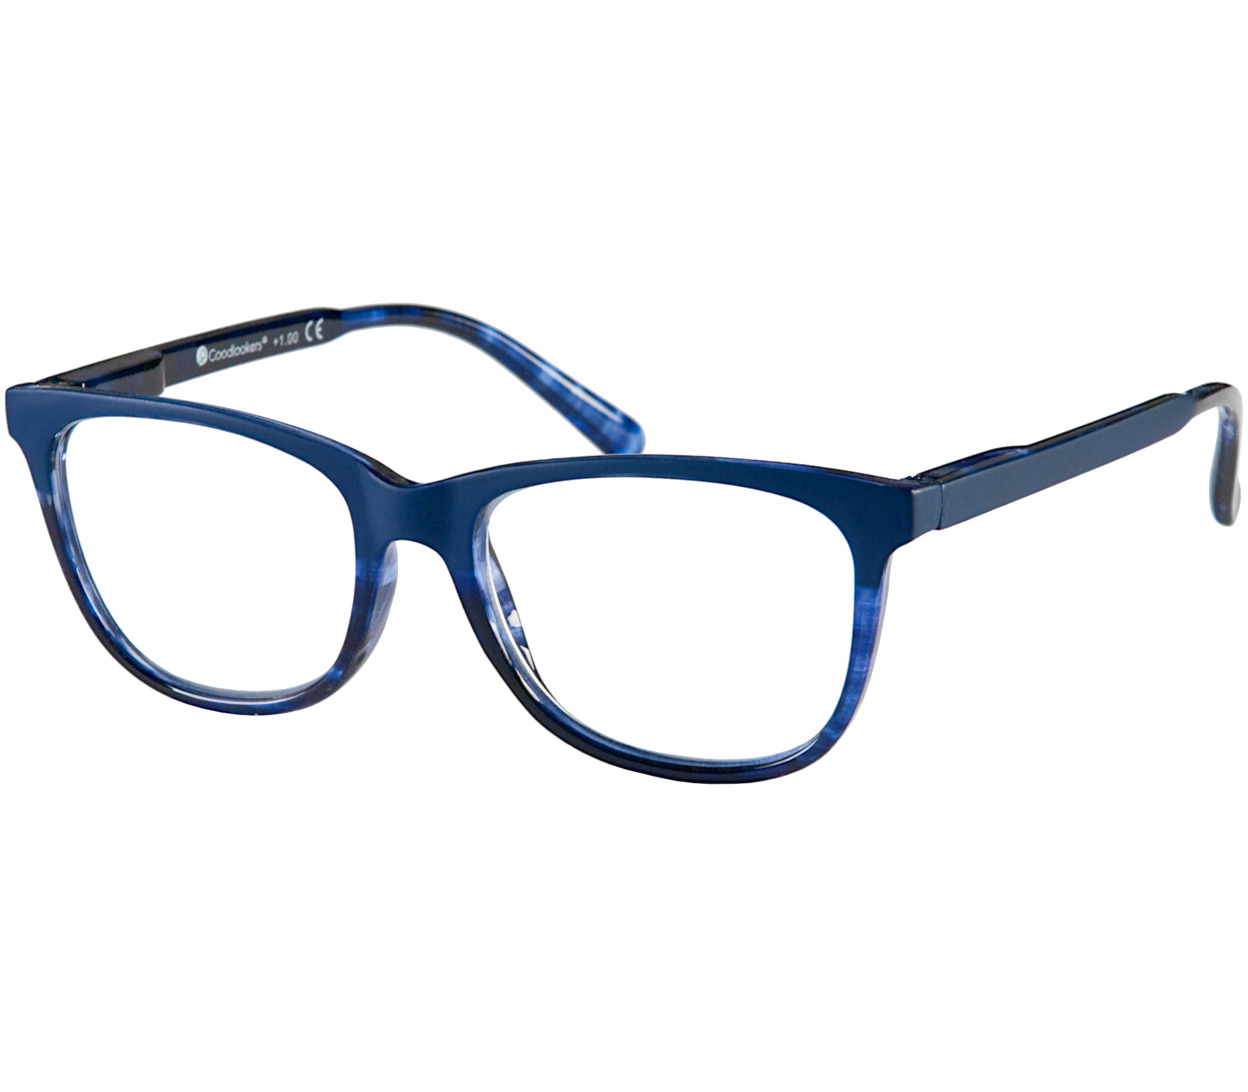 Main Image (Angle) - Grace (Blue) Fashion Reading Glasses